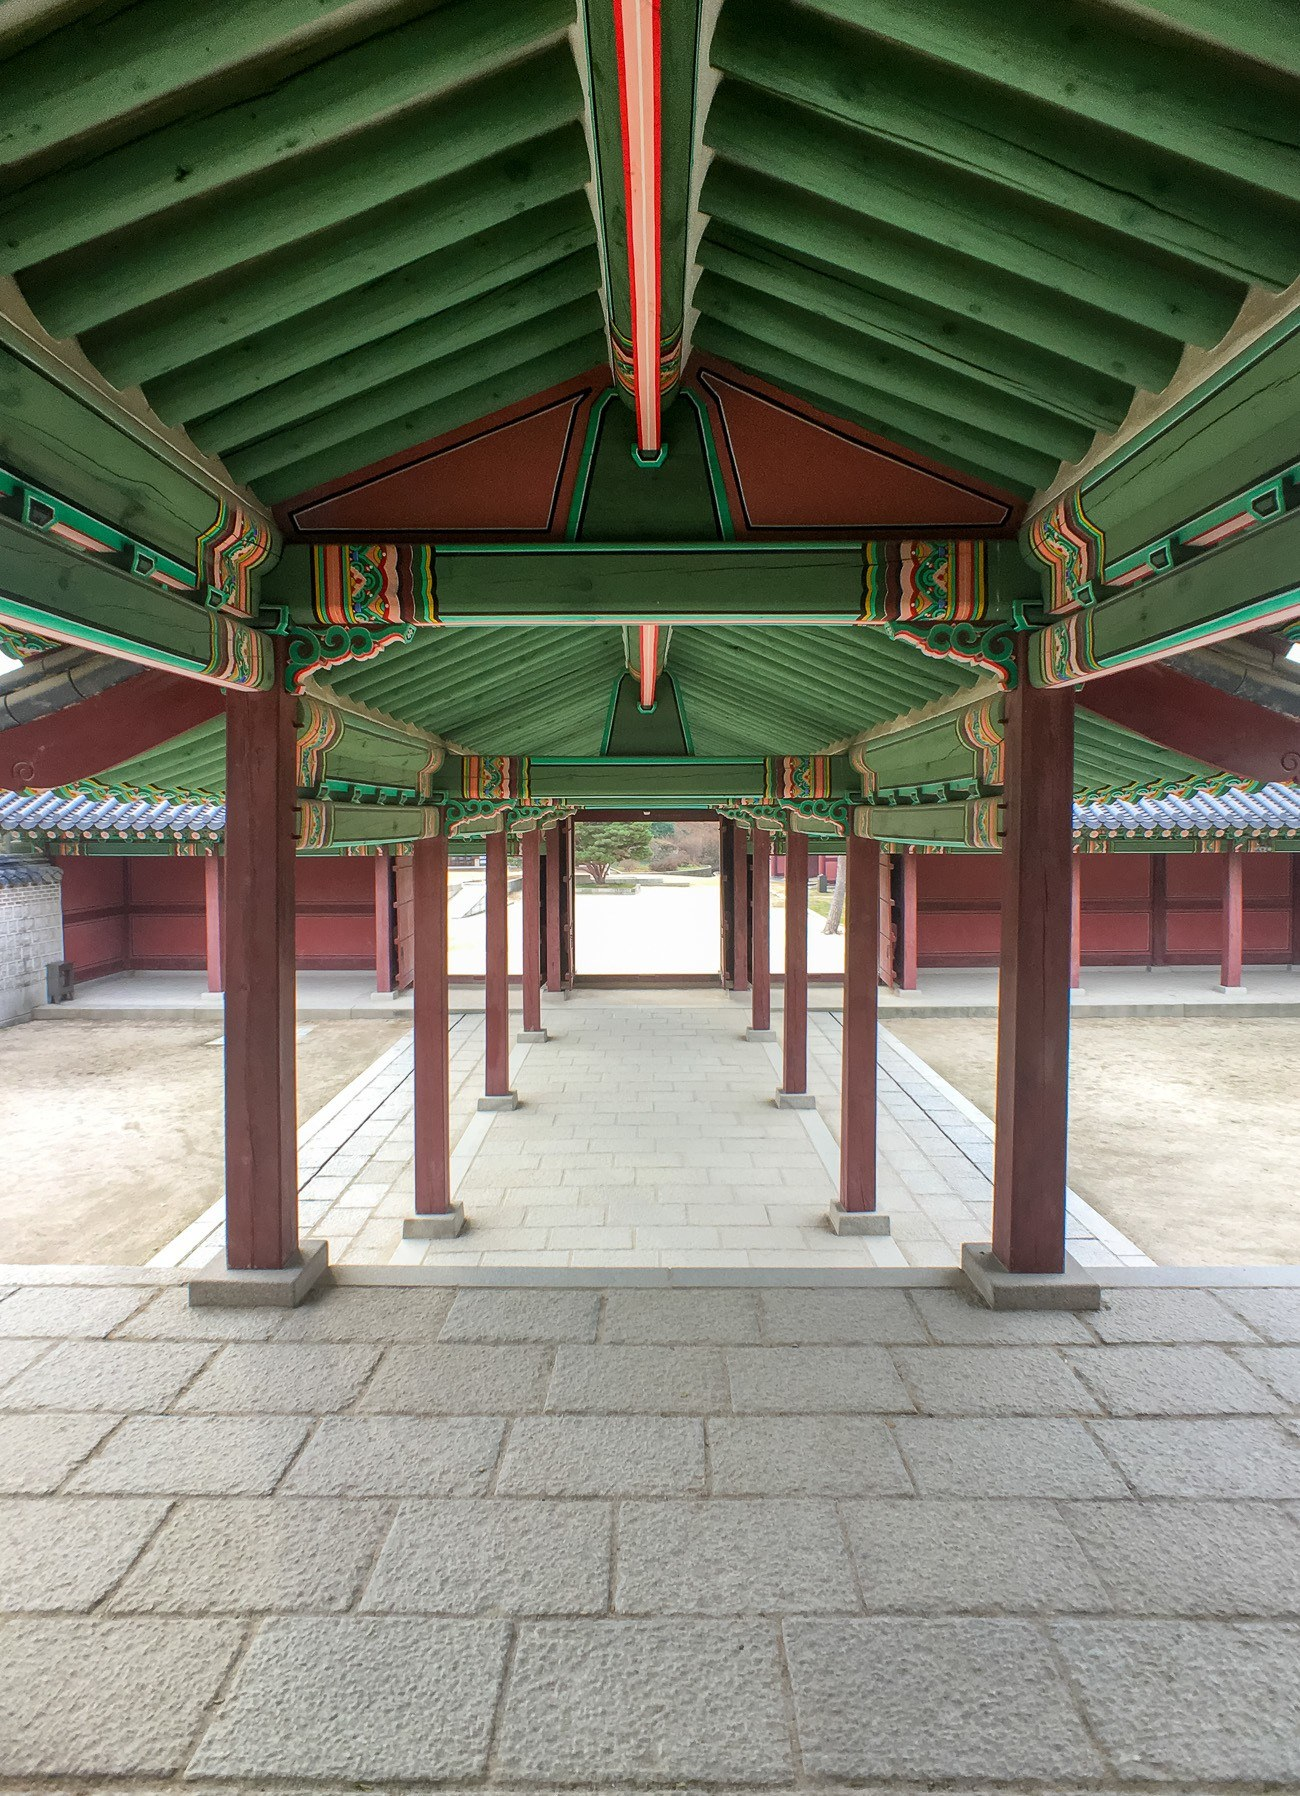 Changdeokgung Palace in Seoul as shot using one of the best iPhone lenses - a Moment 18mm wide angle lens.